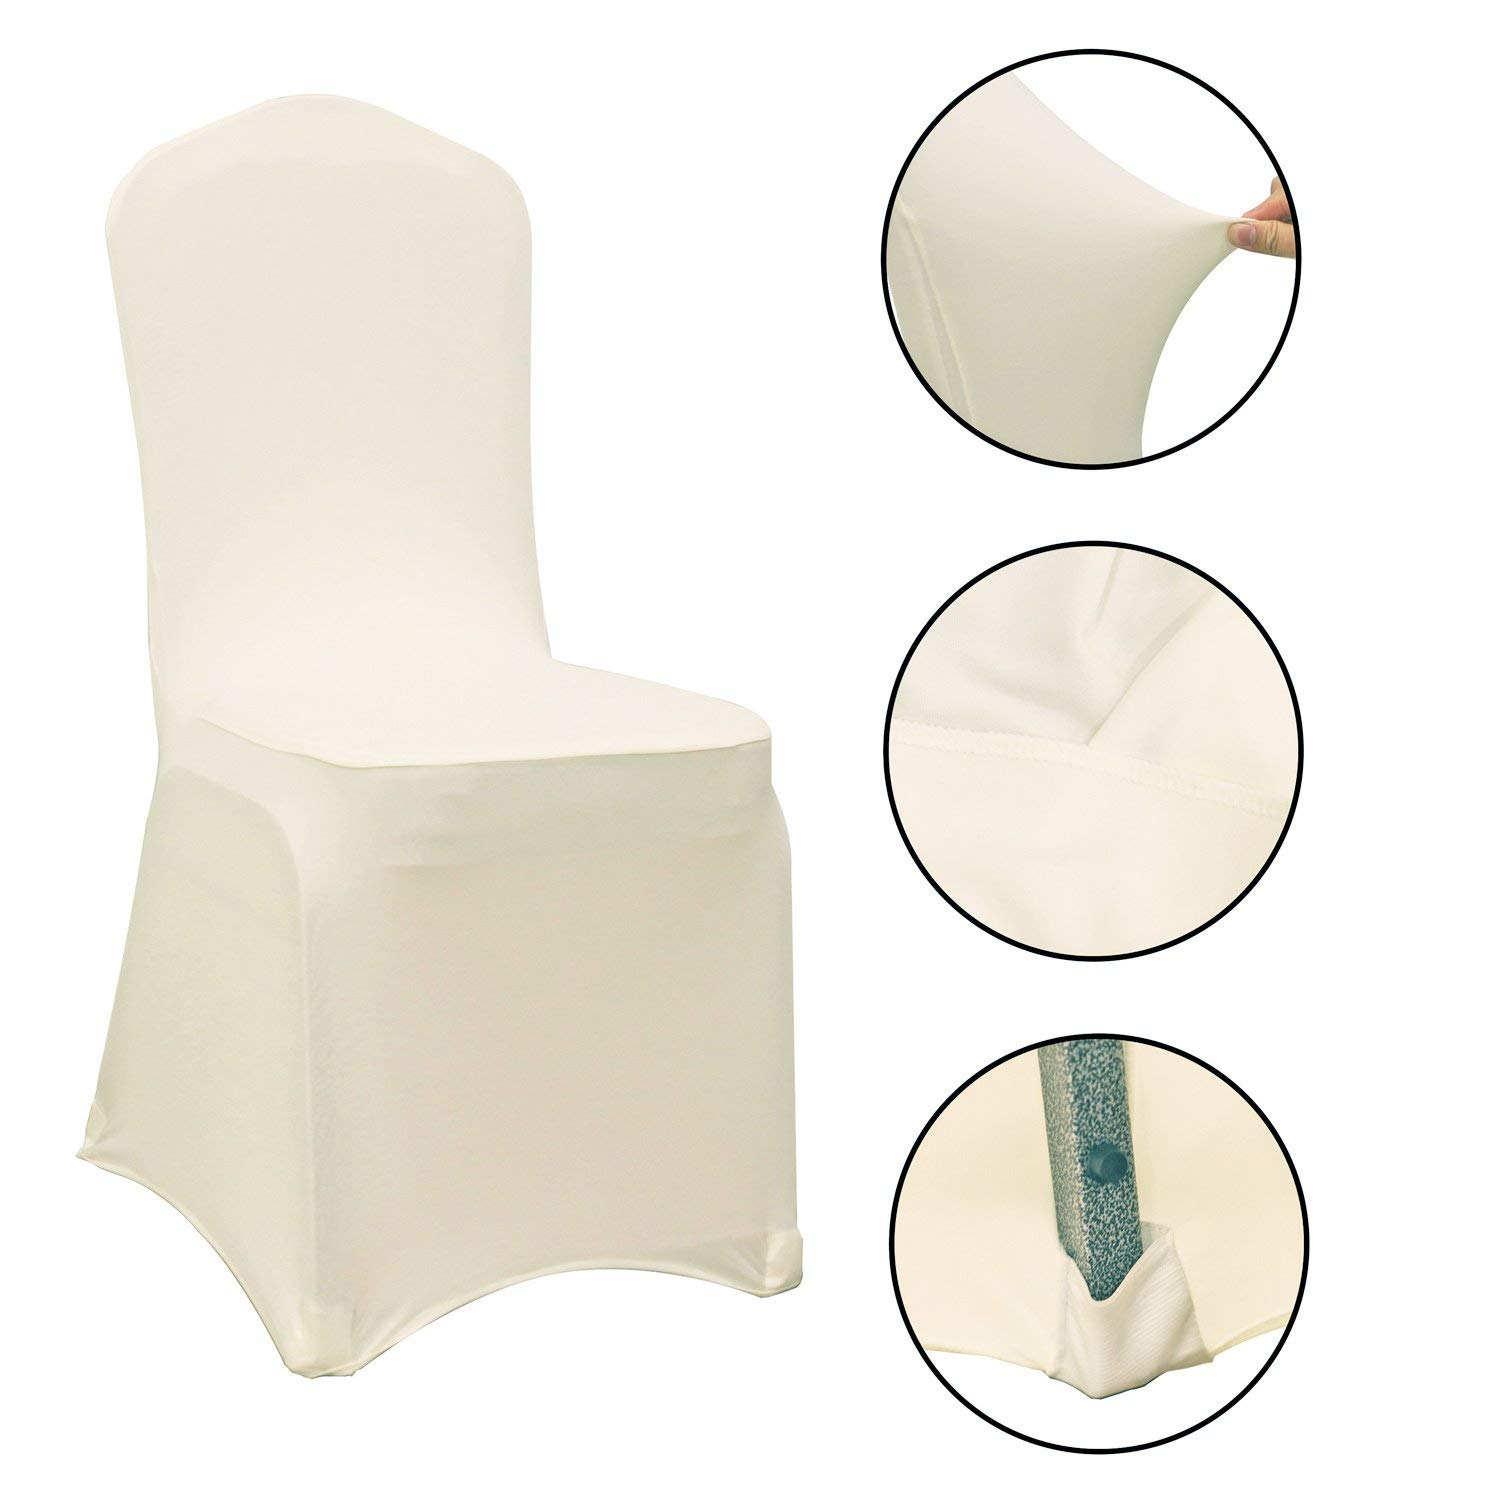 Wholesale White Spandex Chair Cover with Back Cross Stretch Slivcovers for Banquet Wedding